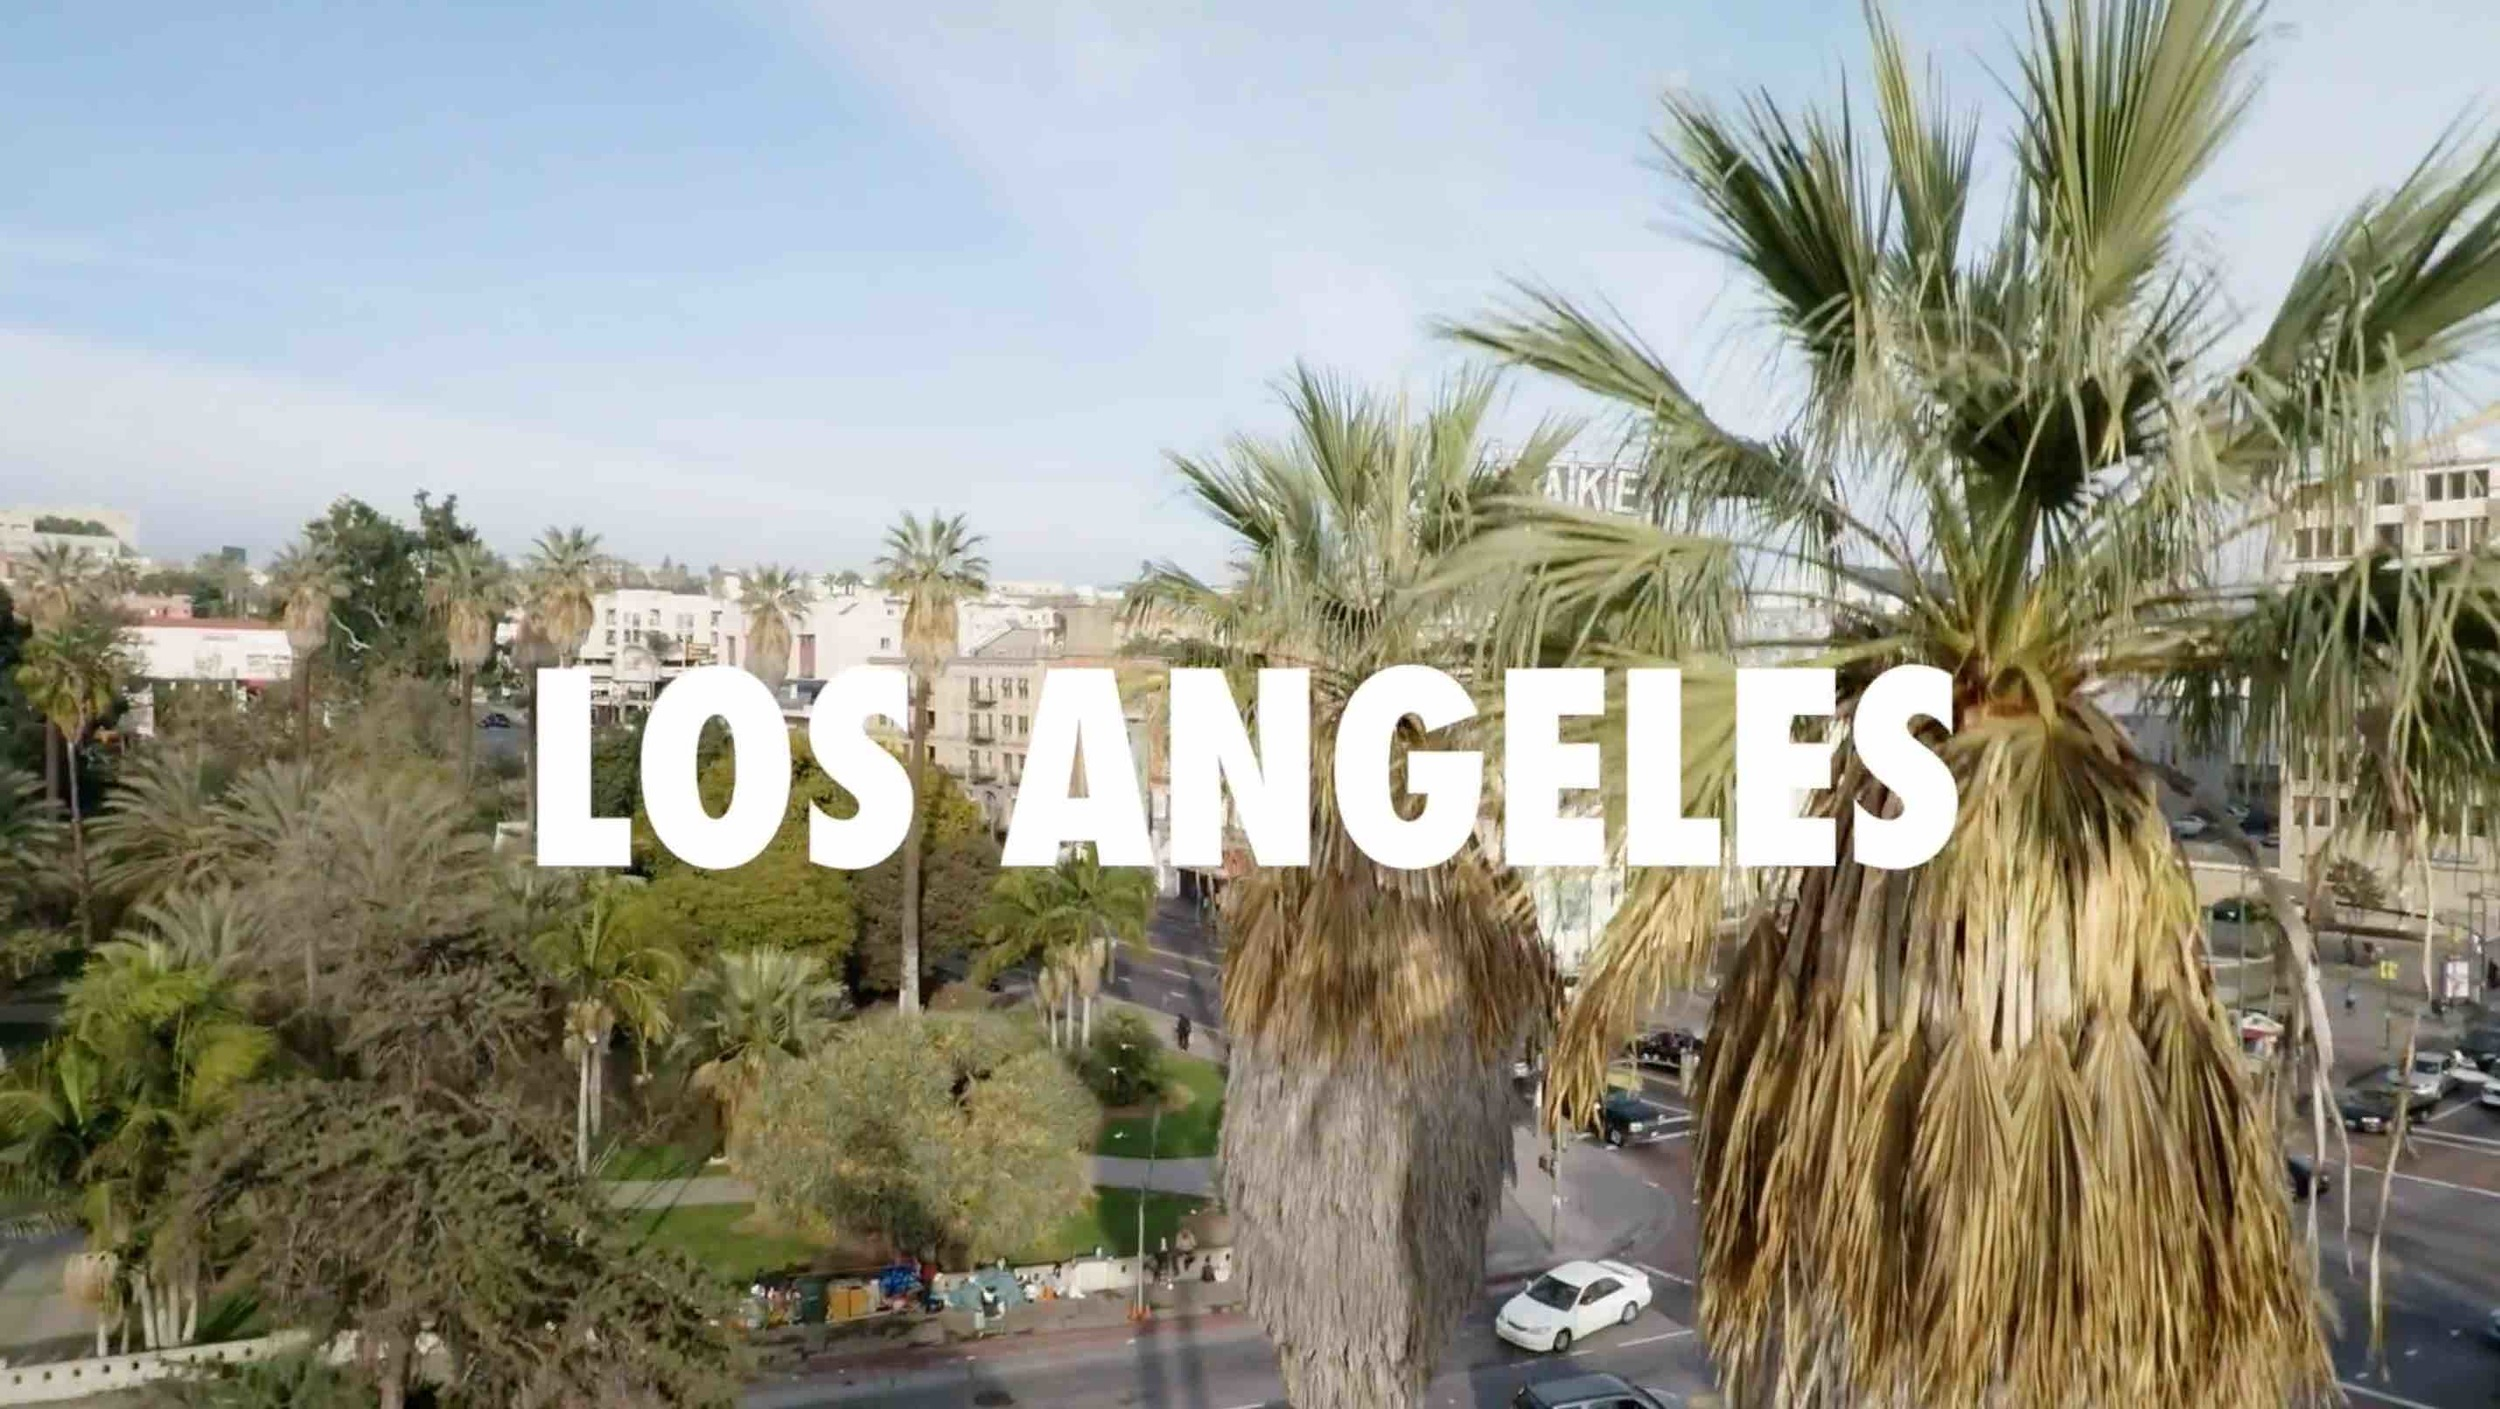 Click to navigate the streets of Los Angeles